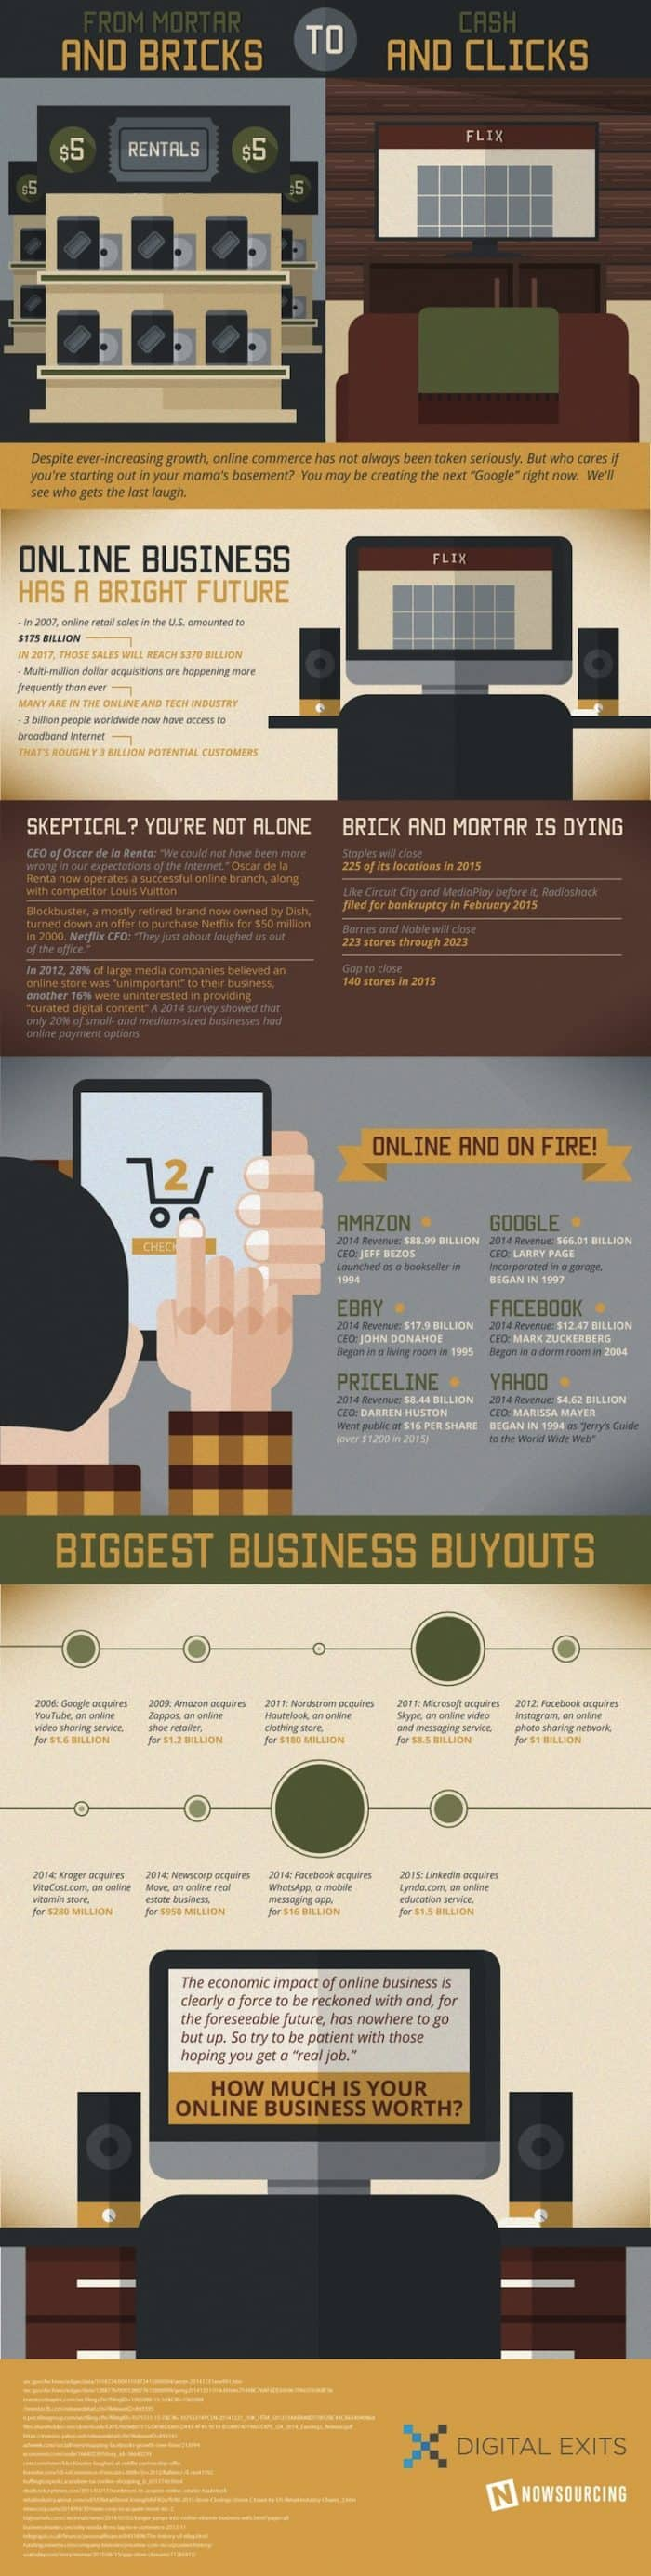 Online Commerce Infographic